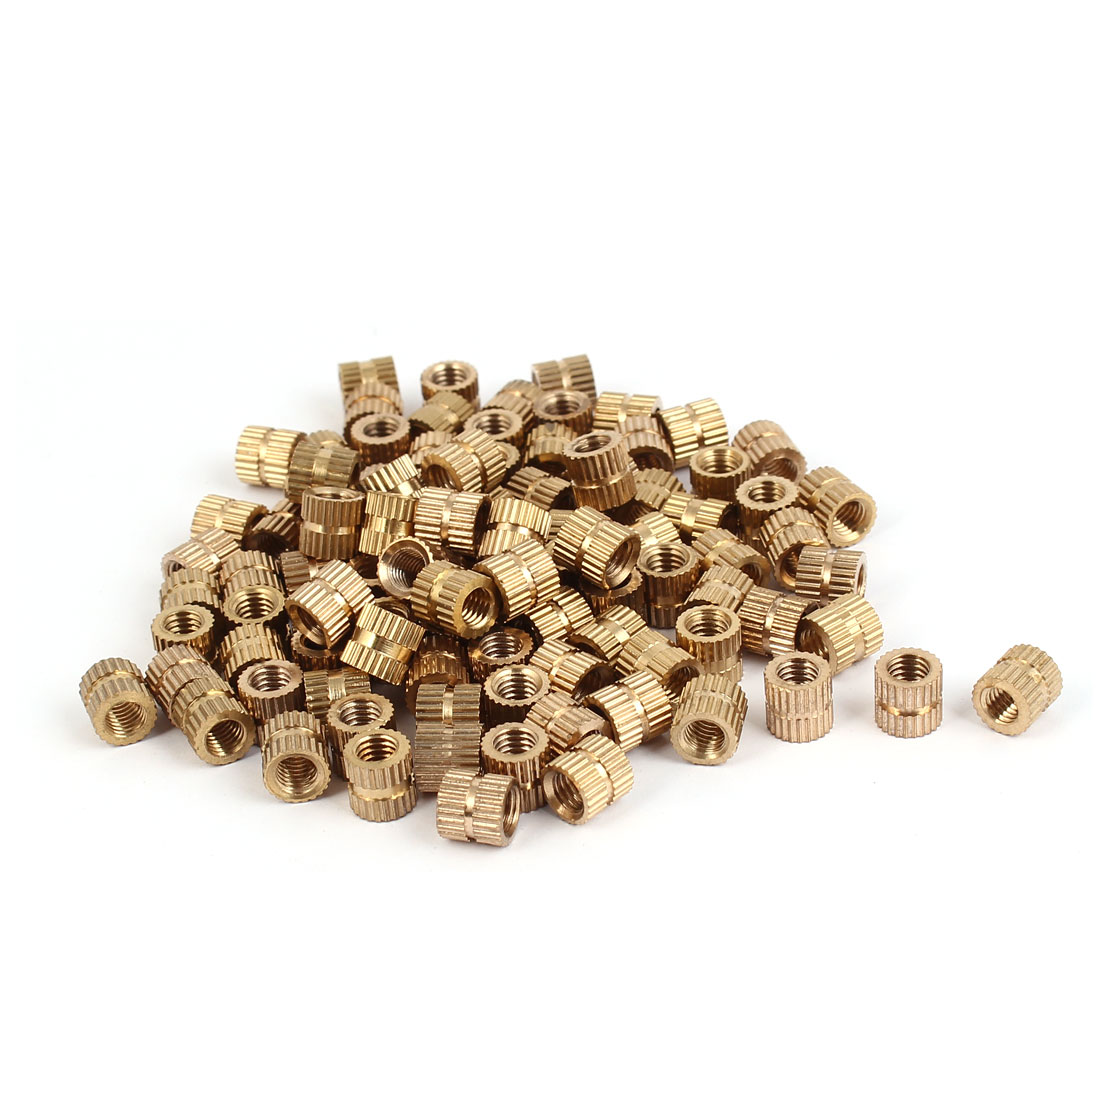 M5 x 7mm Brass Cylindrical Knurled Threaded Round Insert Embedded Nuts 100PCS